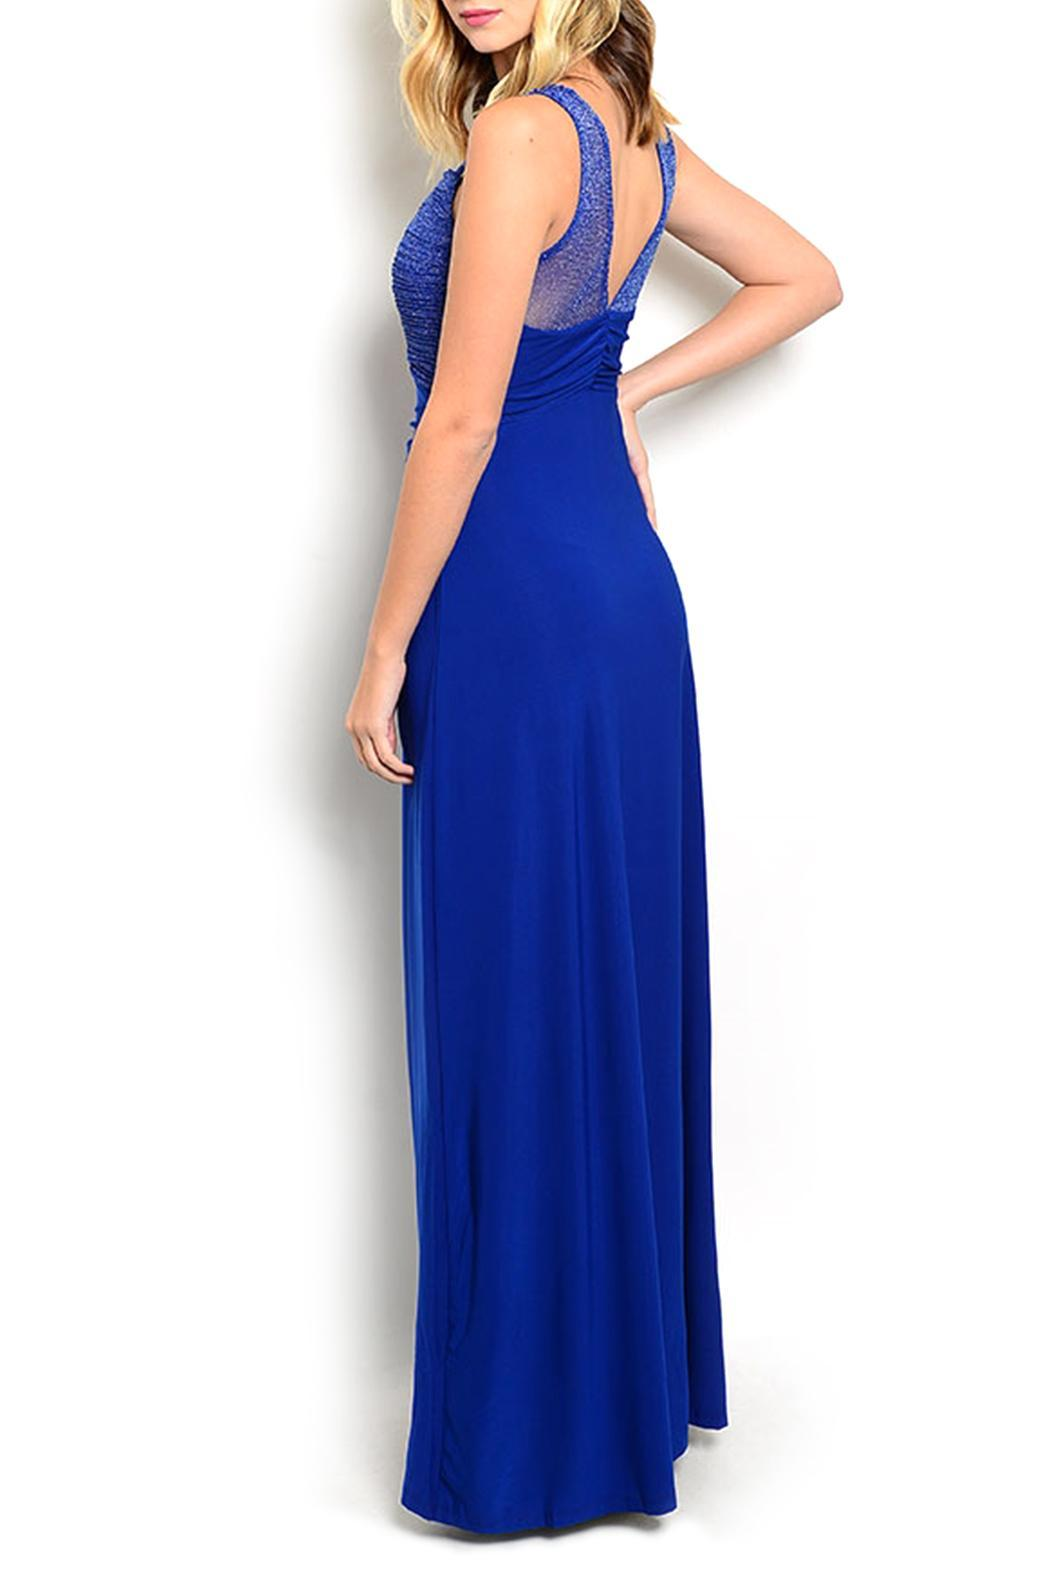 Miss Morena Royal Long Dress From Vancouver By Flattery Fashion Shoptiques